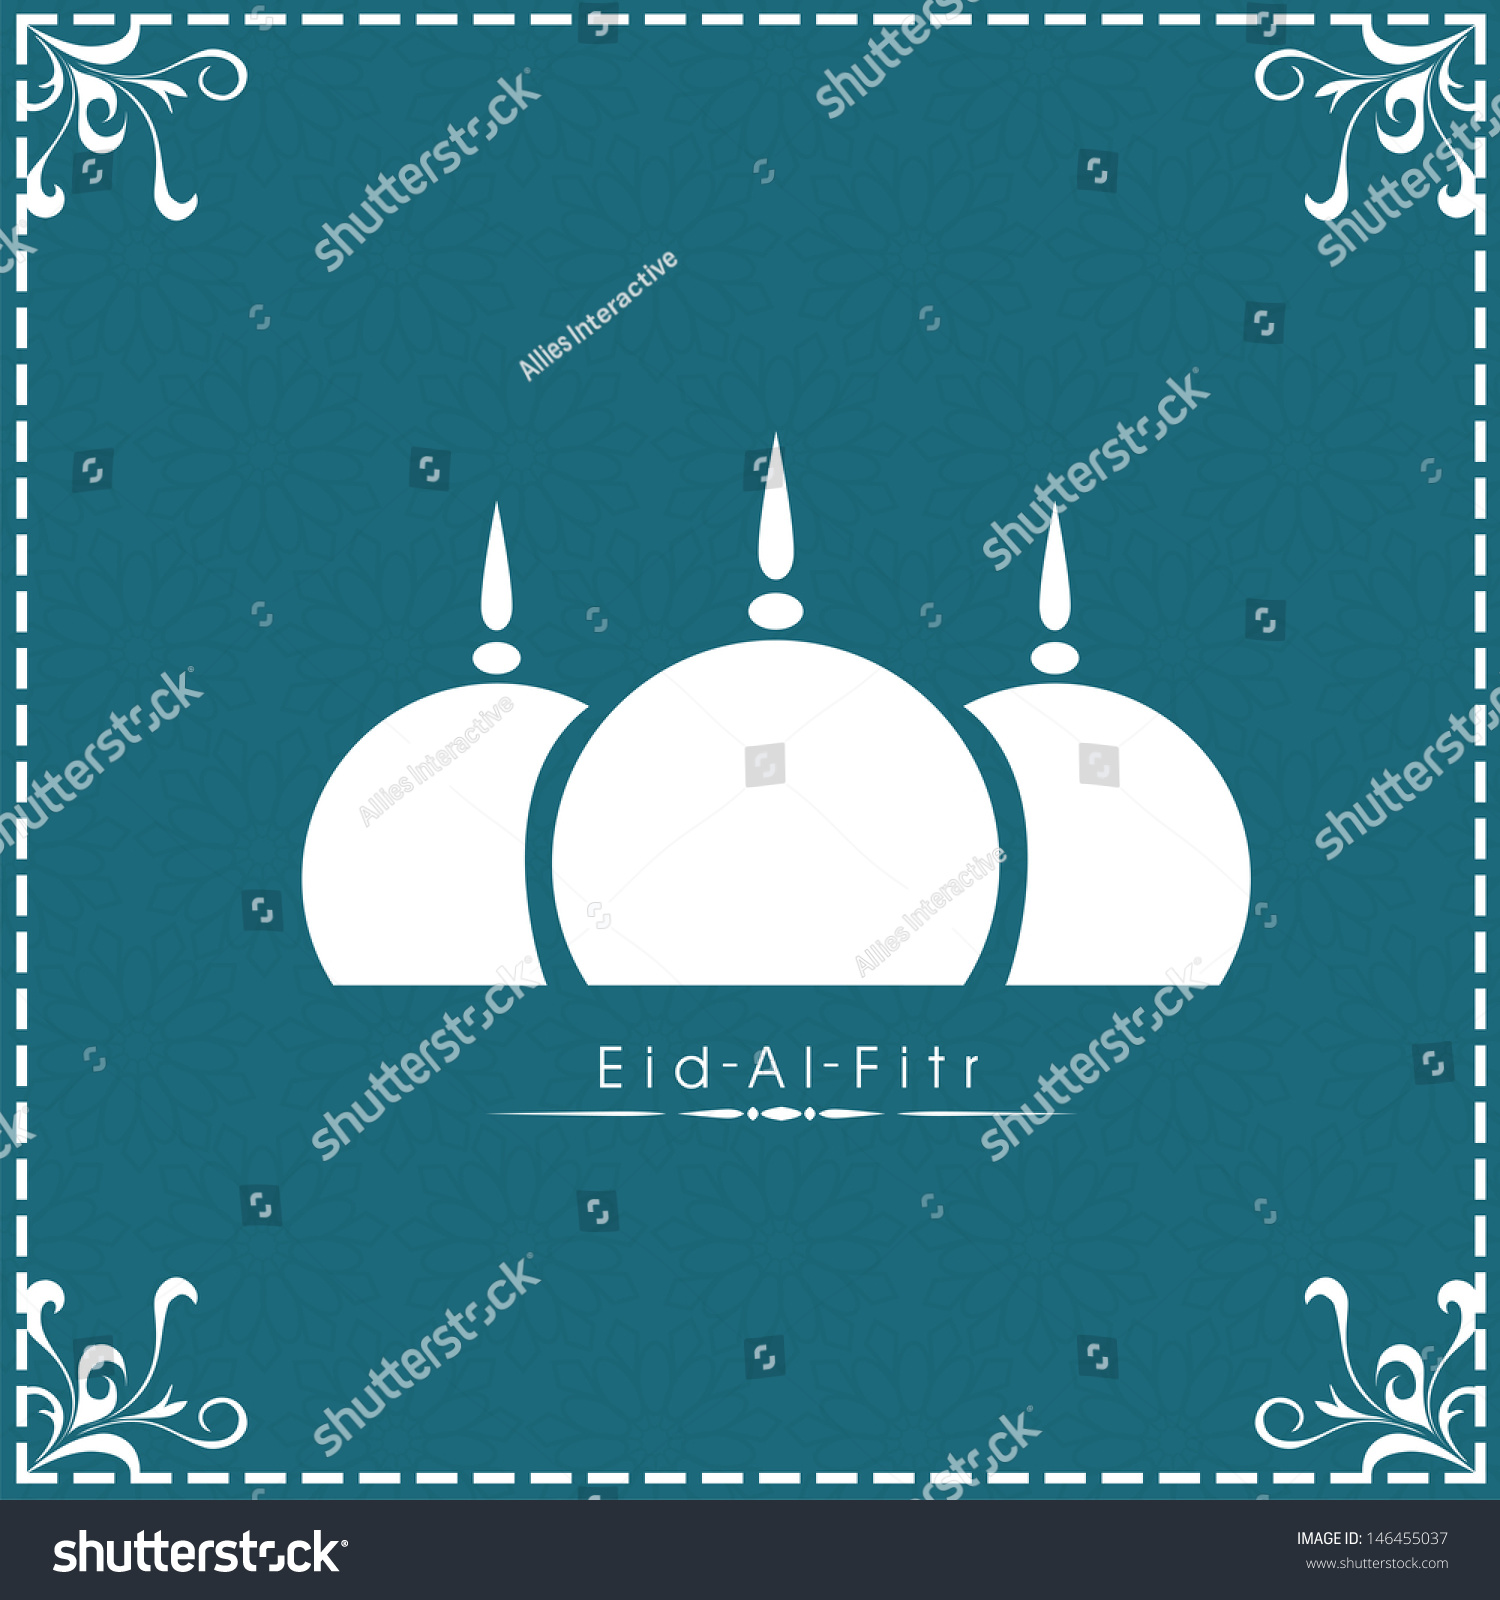 Top Eid Mubarak Eid Al-Fitr Decorations - stock-vector-muslim-community-festival-eid-al-fitr-eid-mubarak-concept-with-mosque-design-in-blue-floral-146455037  Perfect Image Reference_384359 .jpg